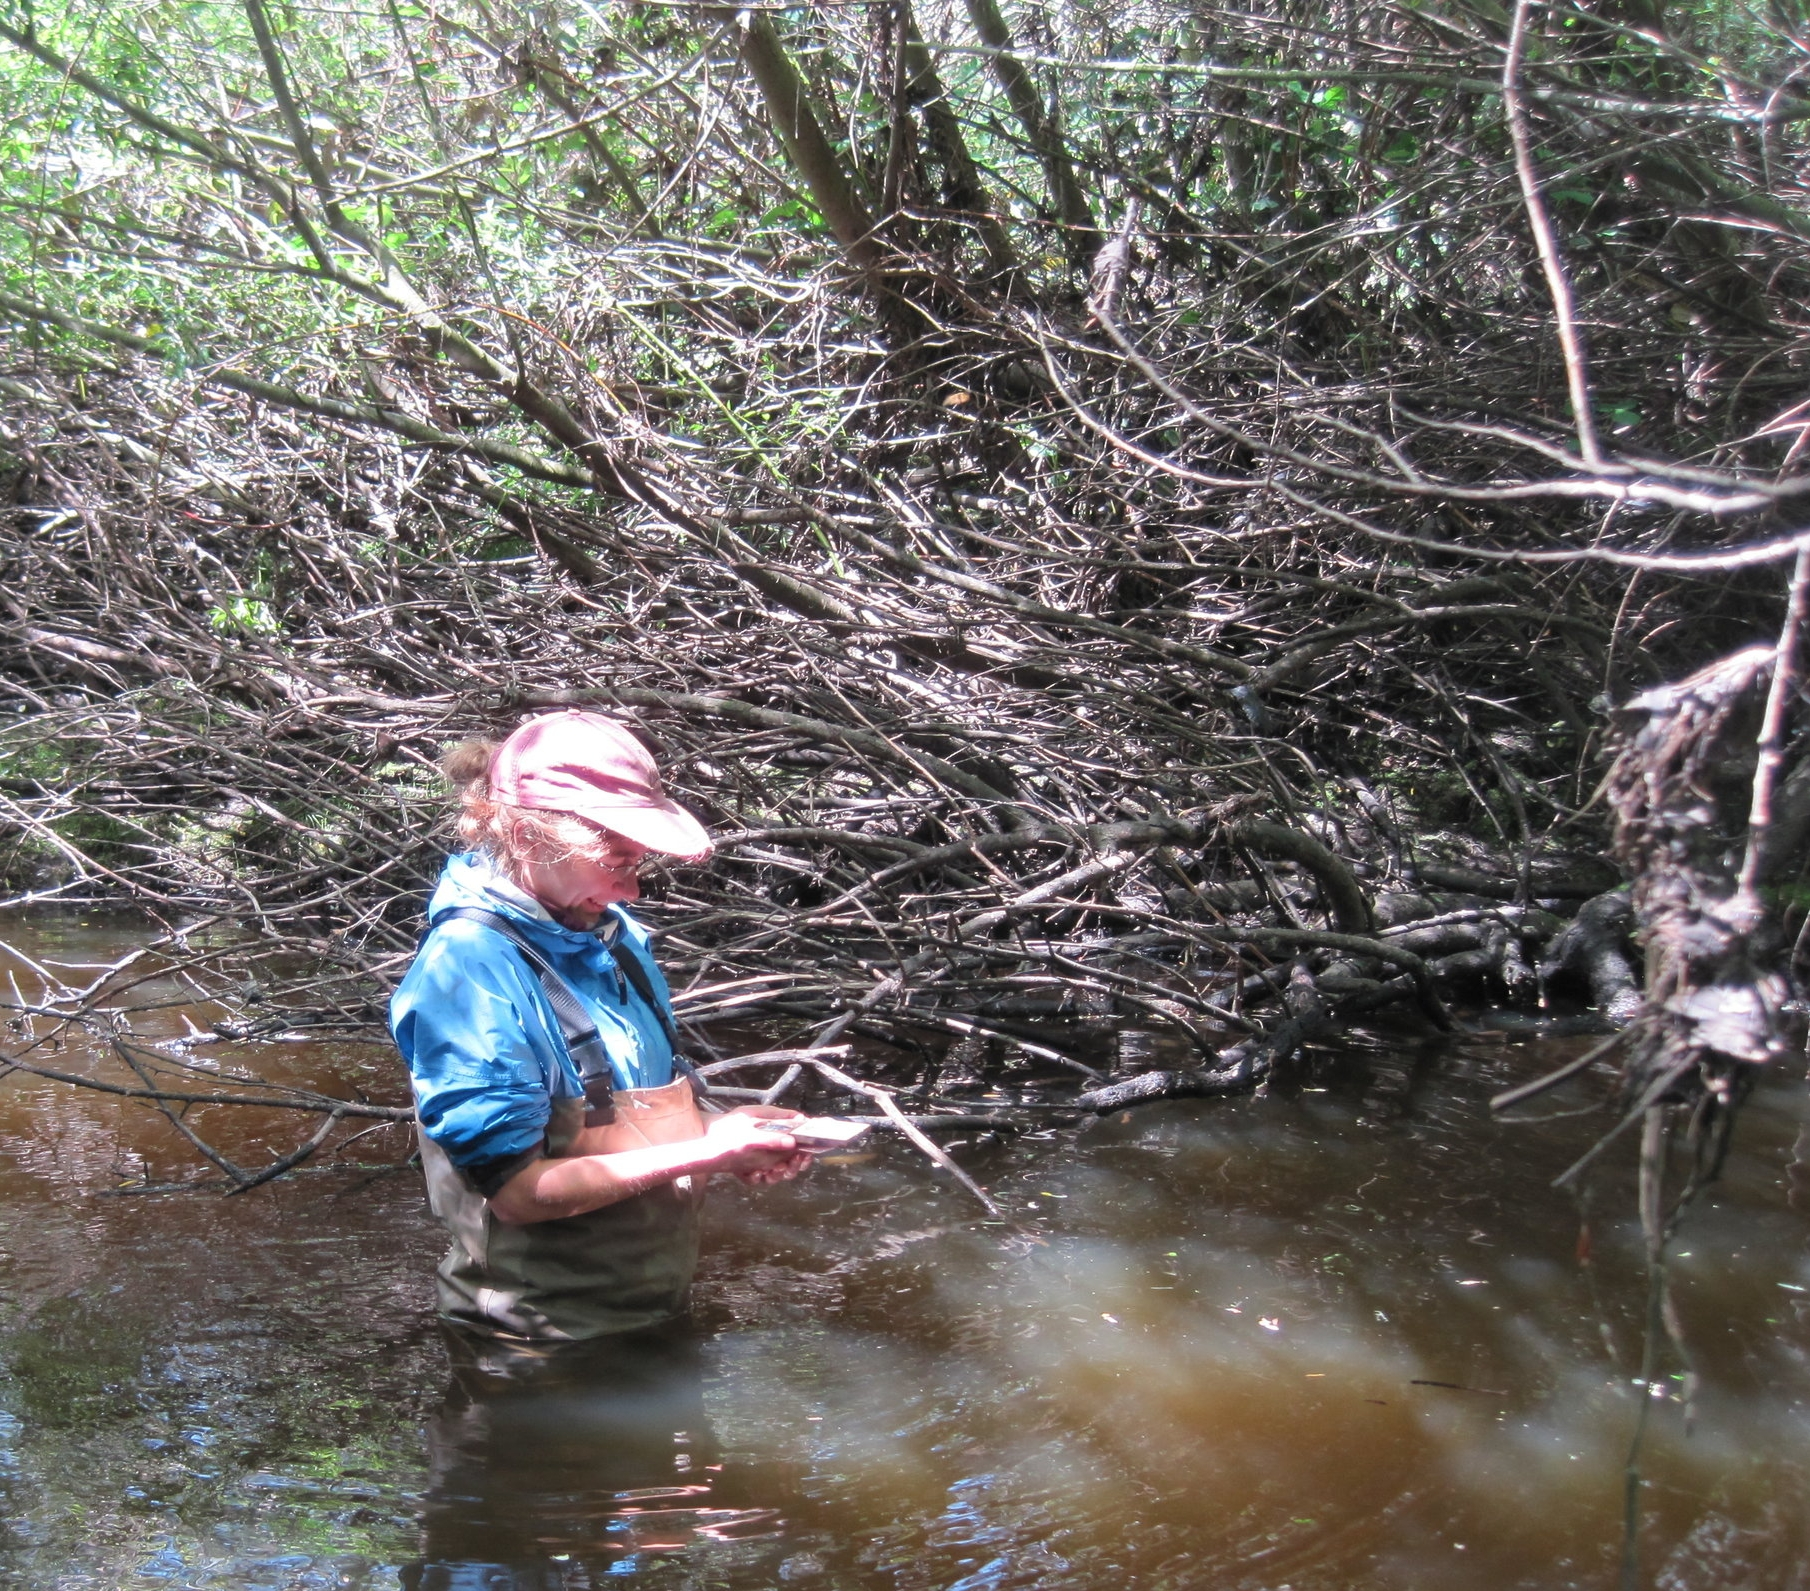 Stream work can be tricky - here I am waist deep trying to measure tree cover in Marin County.